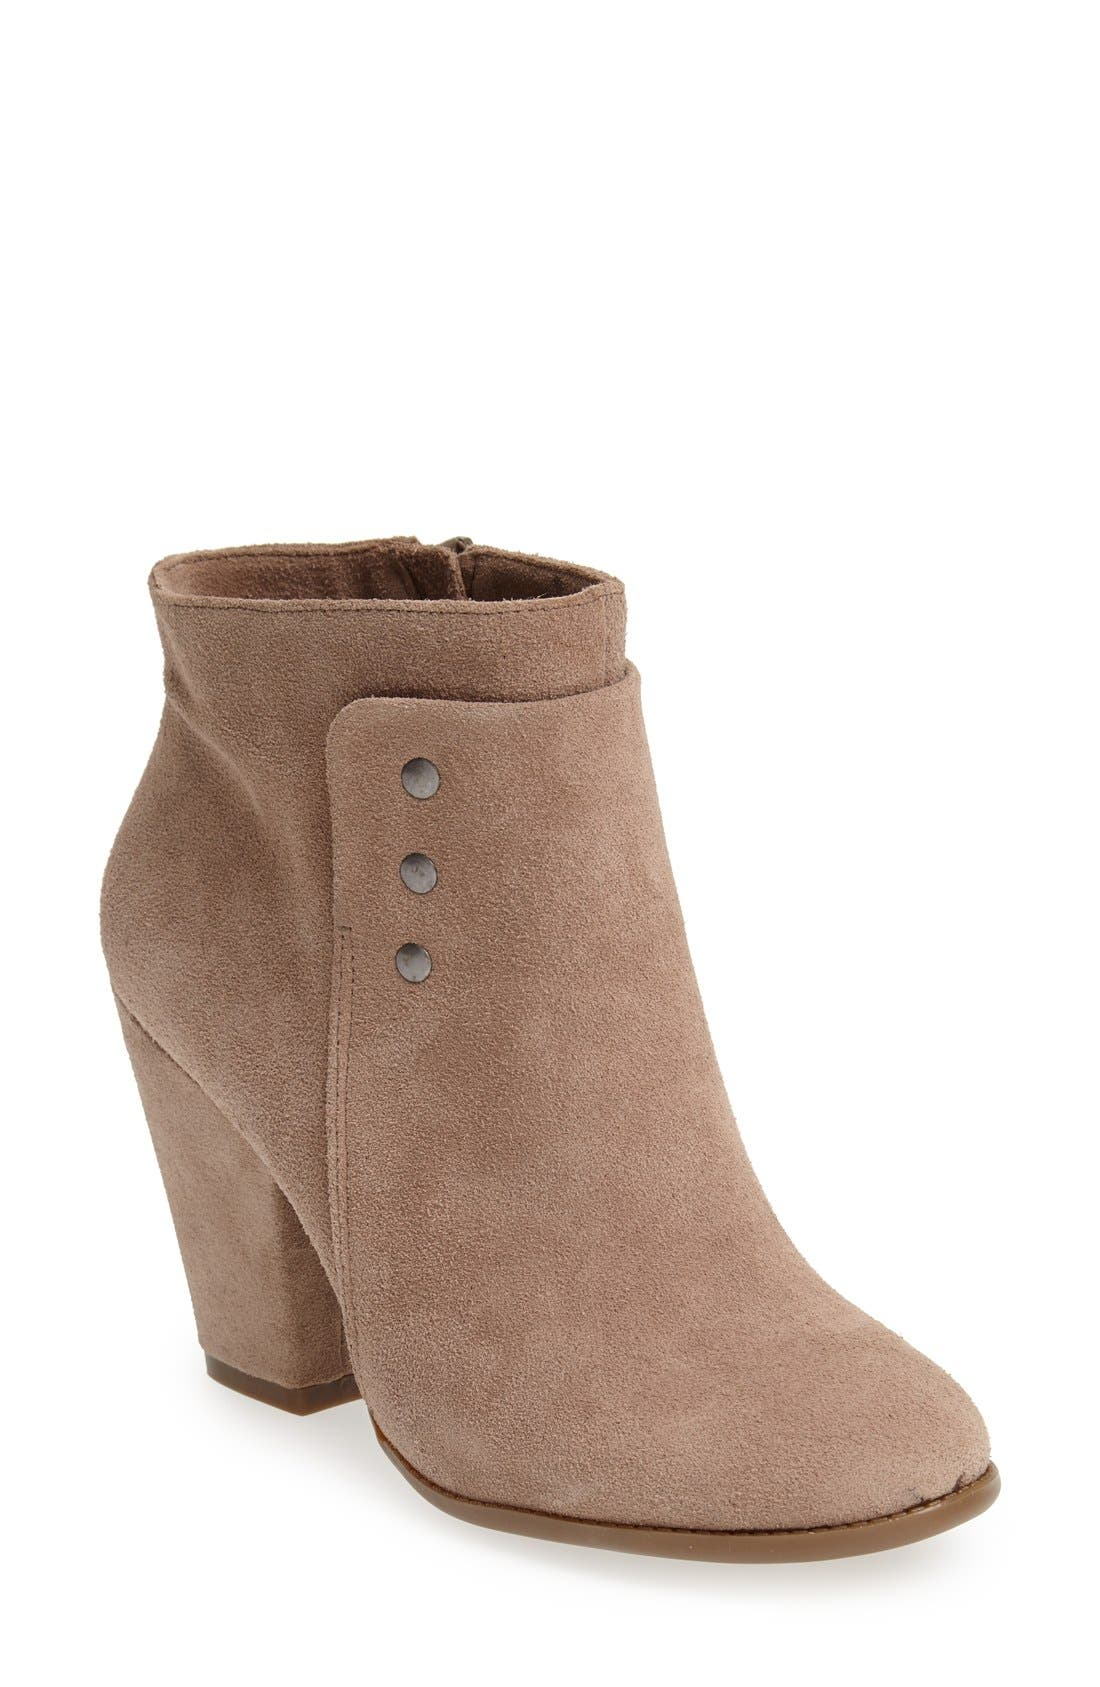 Main Image - Sole Society 'Erlina' Leather Ankle Bootie (Women)